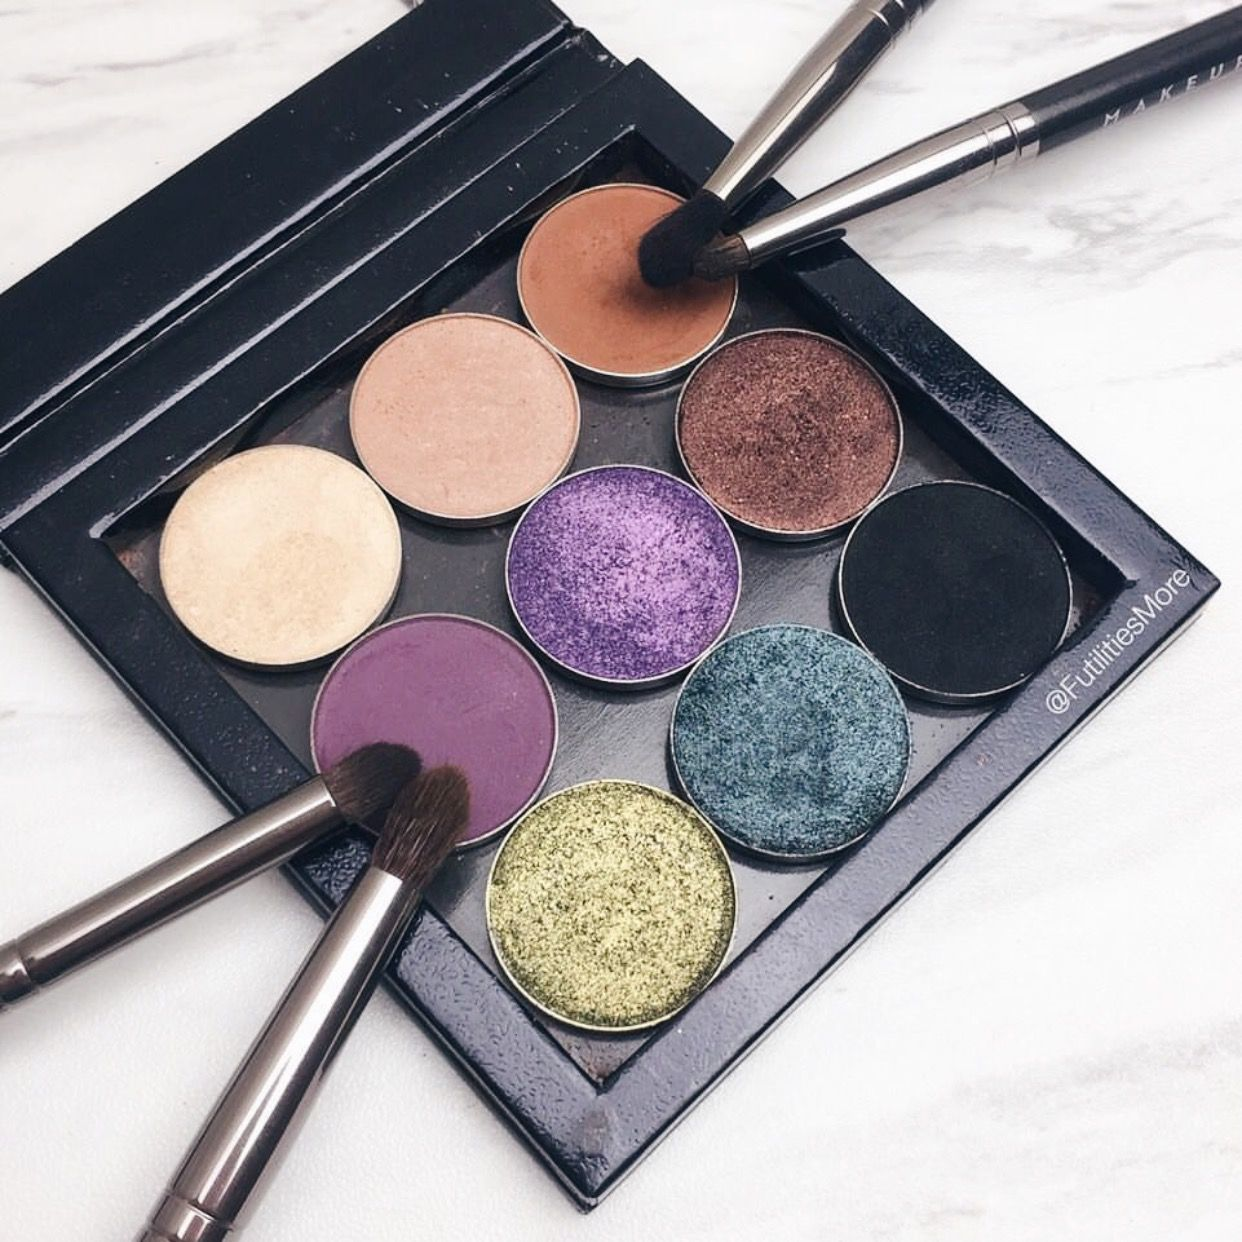 Small Z Palette filled with Makeup Geek eye shadows ️